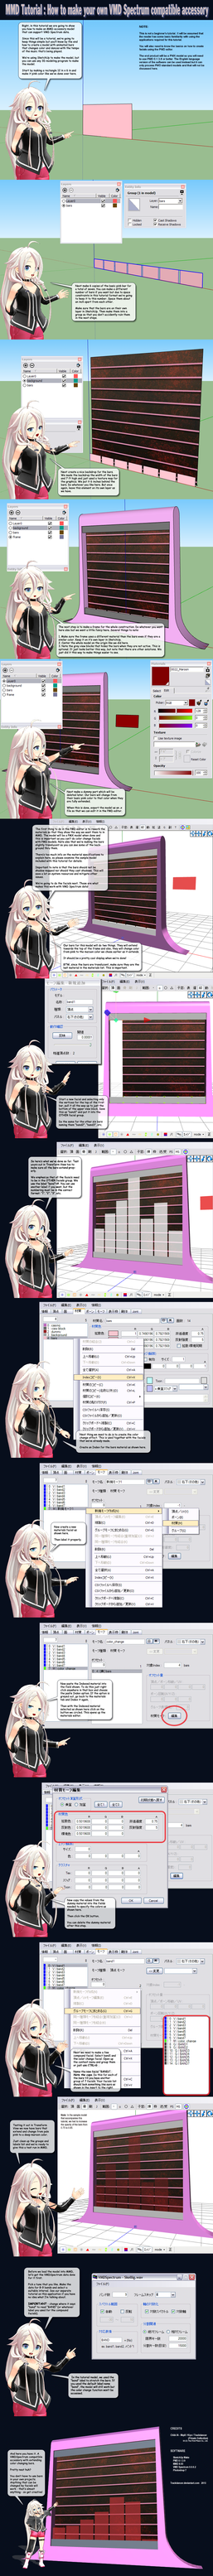 how to use mmd for beginners